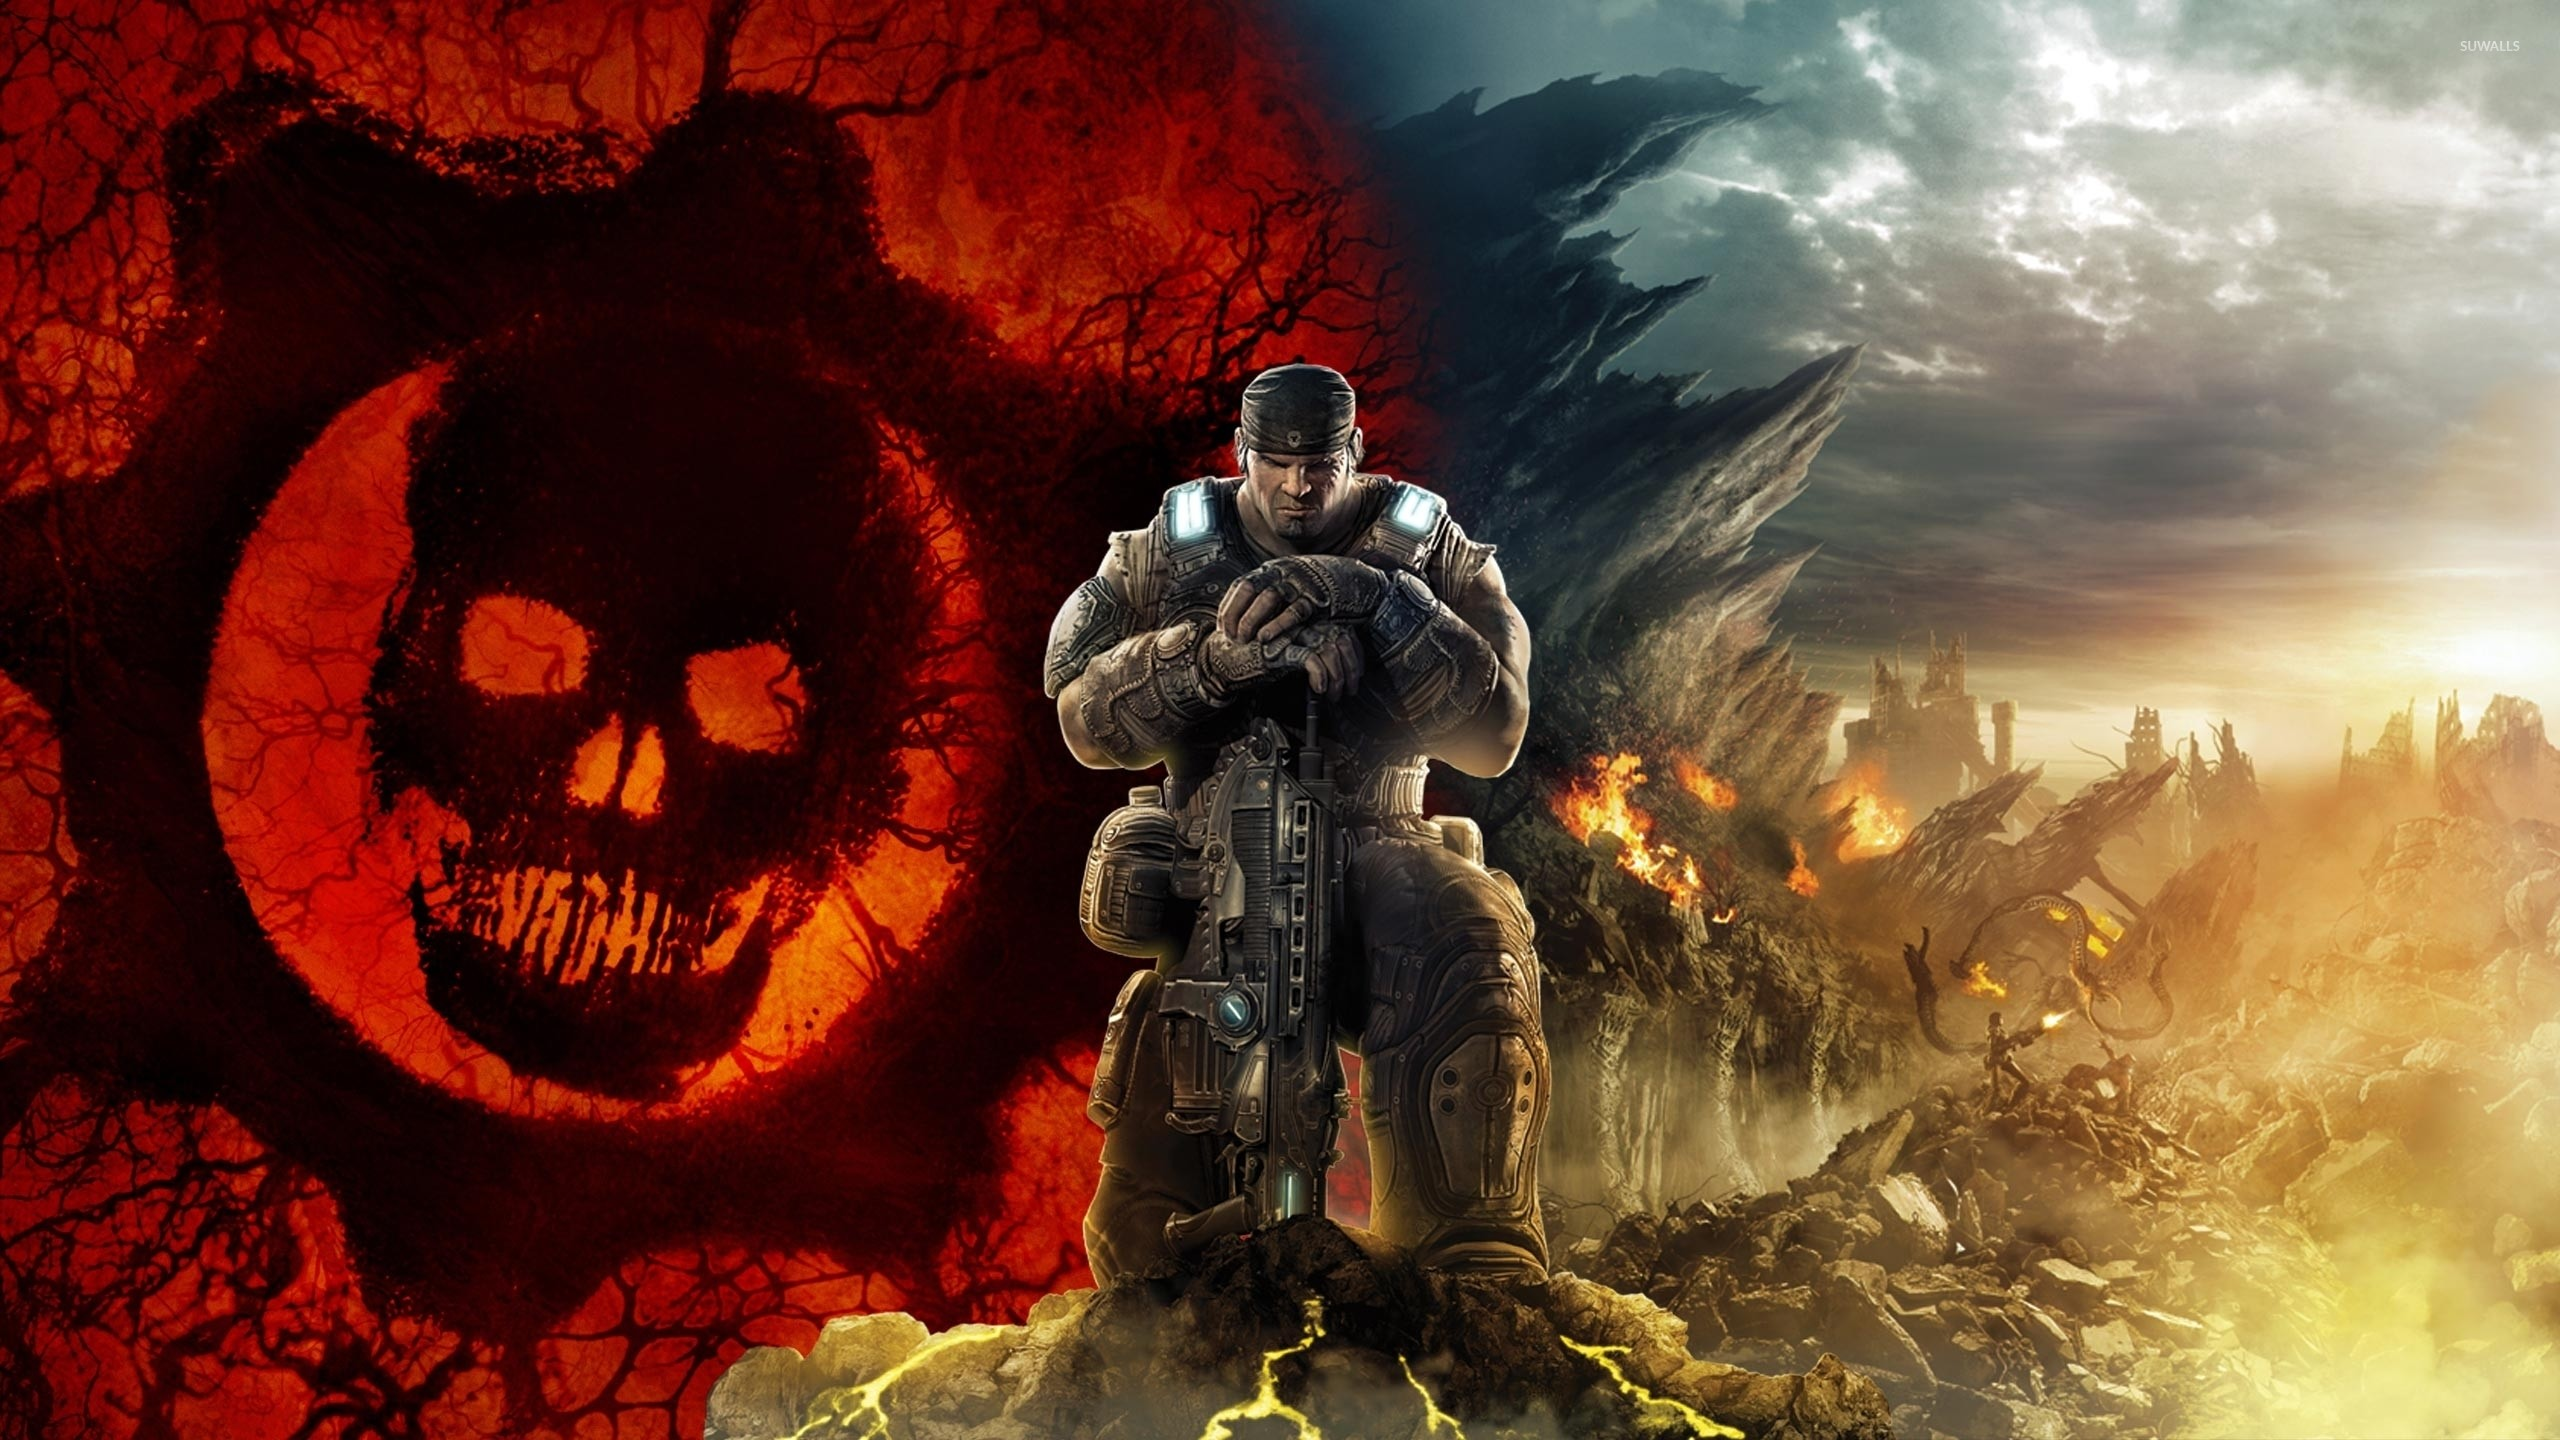 2560x1440 Gears of War 3 [15] wallpaper